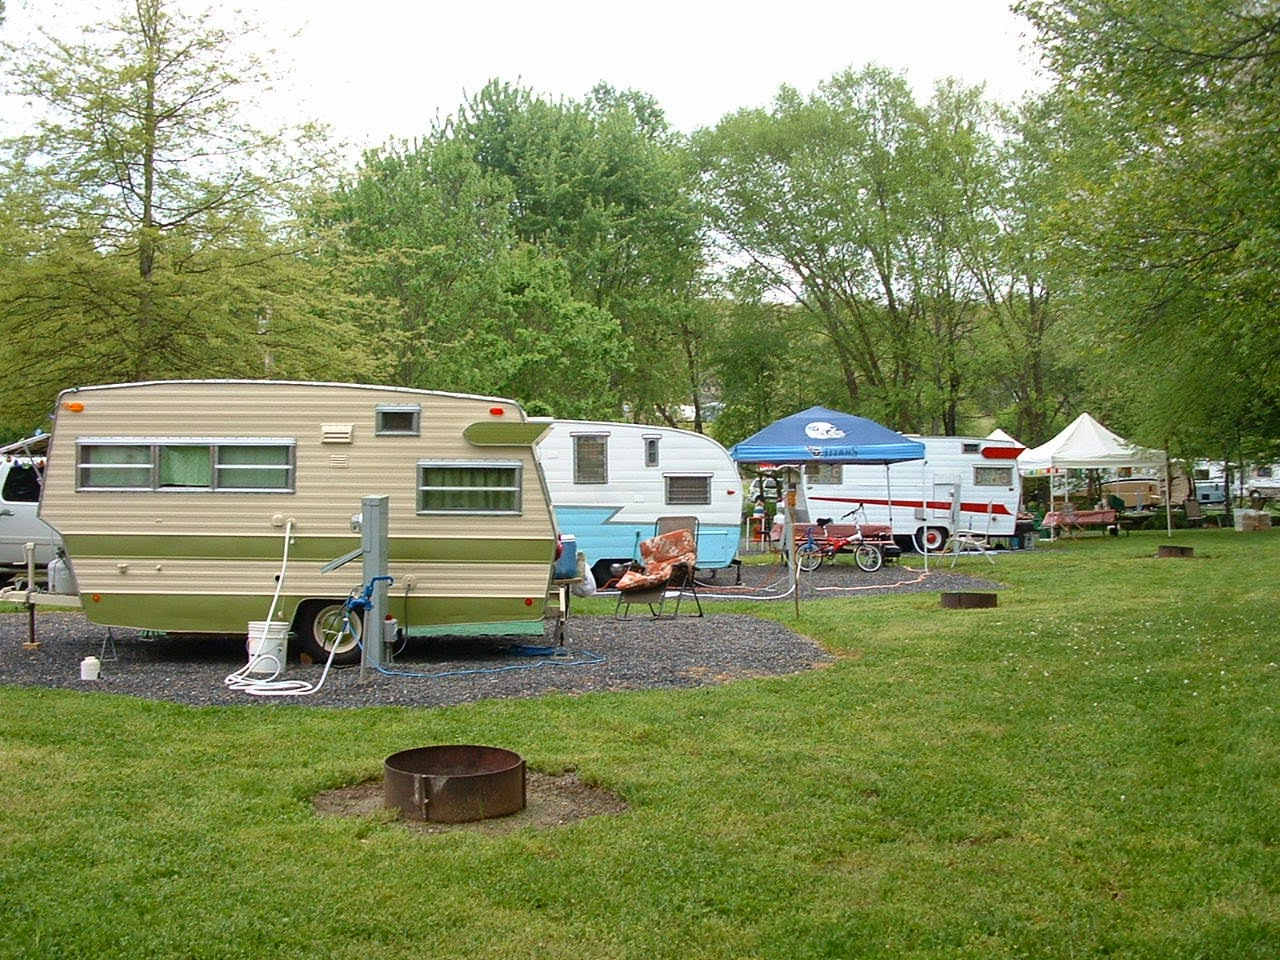 Vintage Awnings Riverbend Campground Rally In Hiawassee